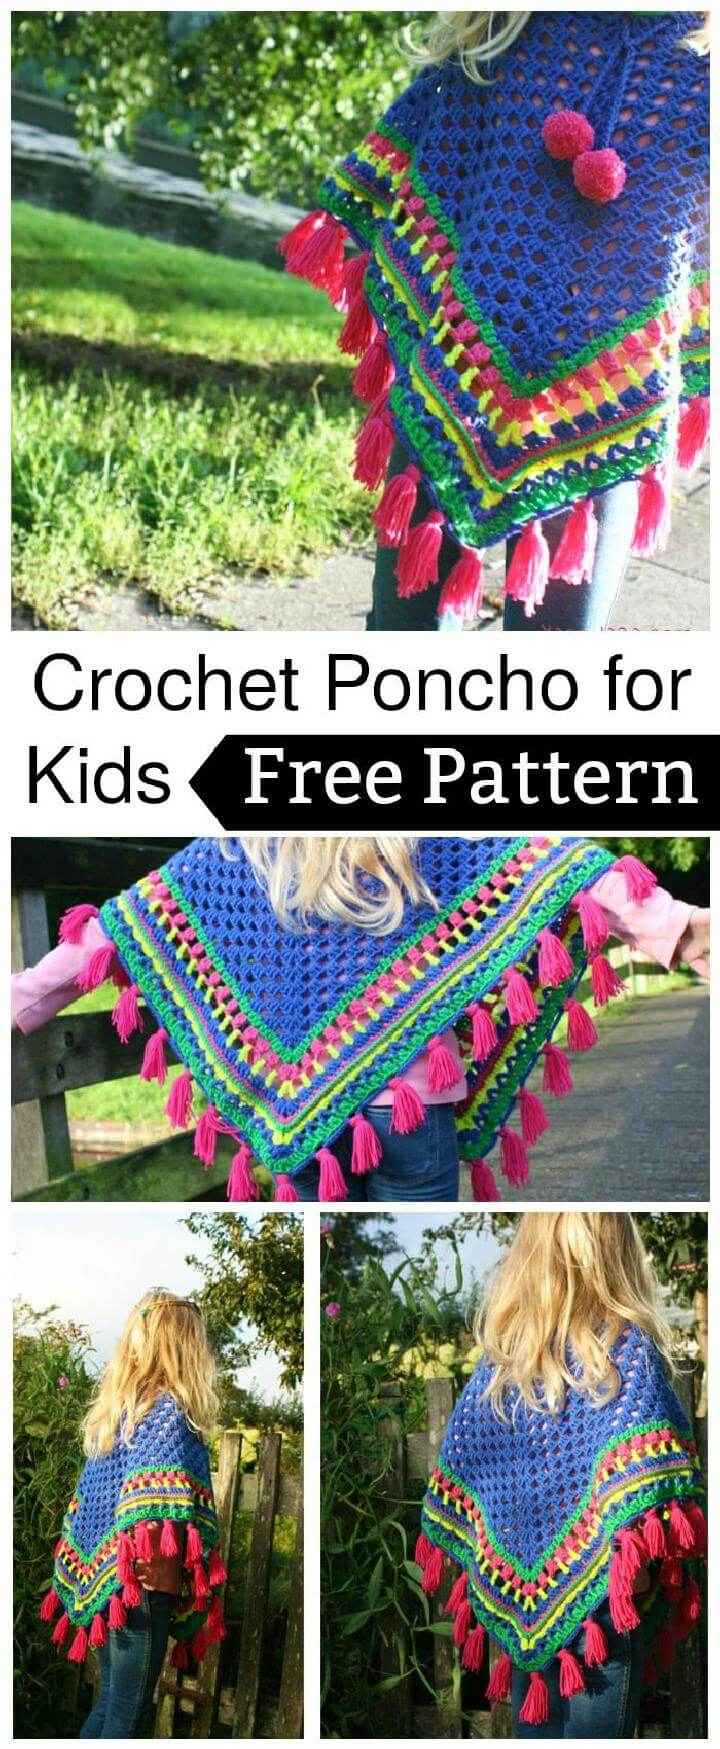 Cheerful crochet poncho for kids - Free Pattern